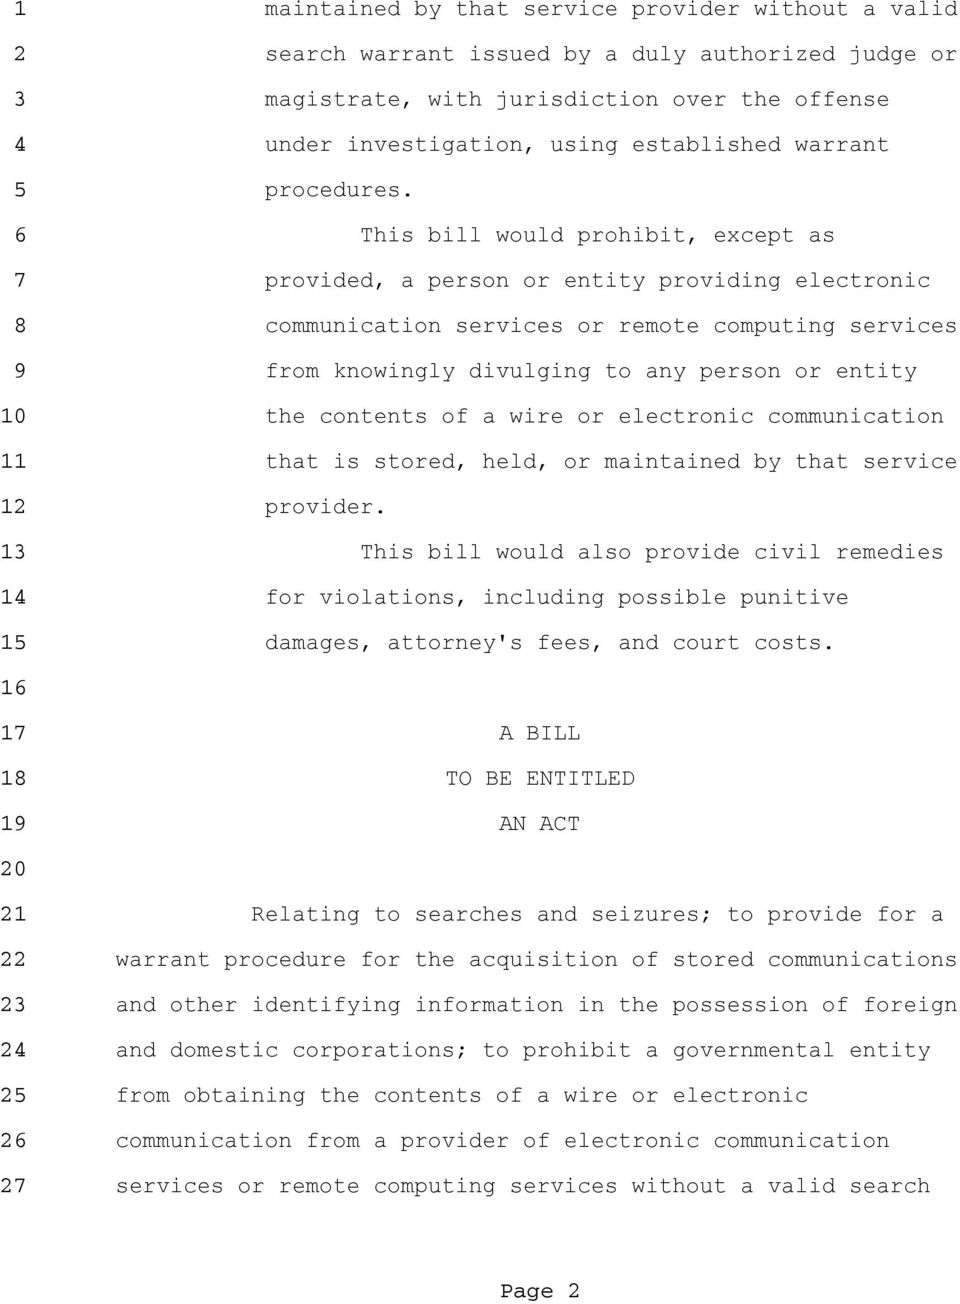 This bill would prohibit, except as provided, a person or entity providing electronic communication services or remote computing services from knowingly divulging to any person or entity the contents